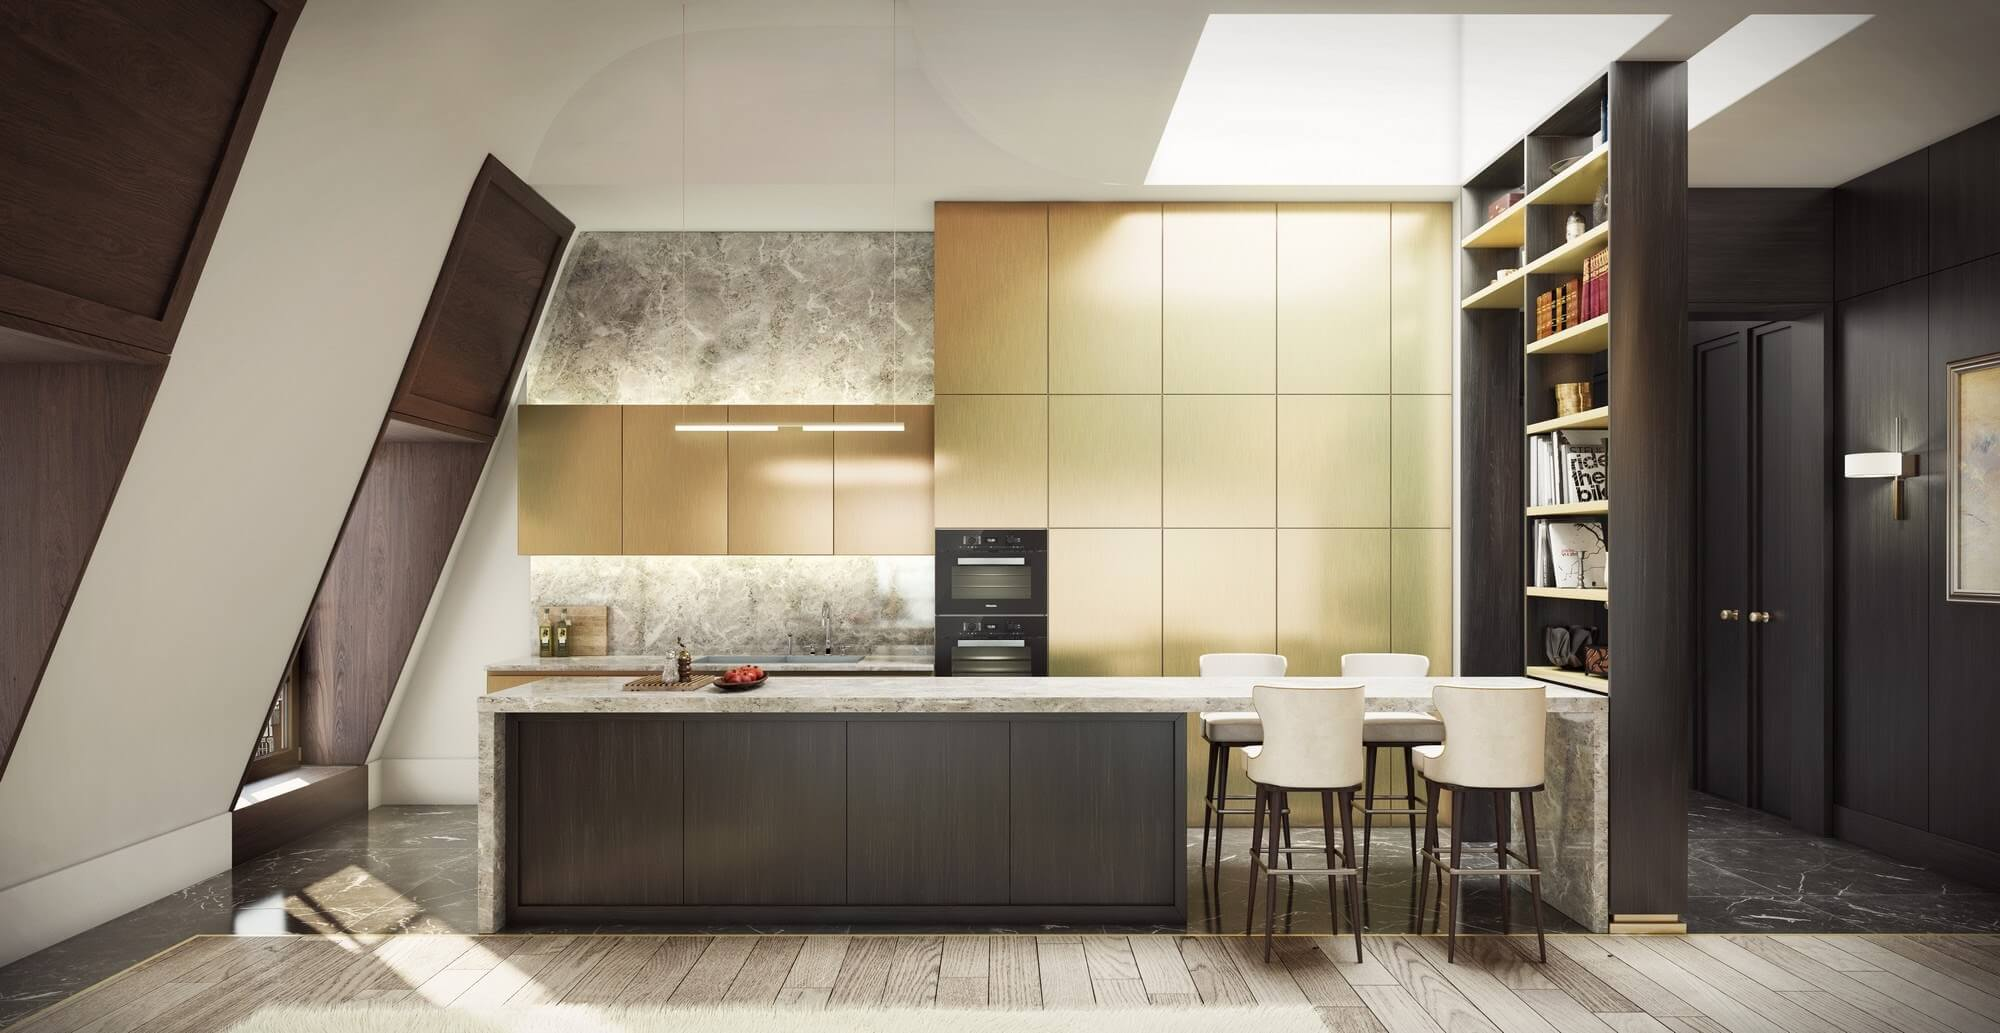 WP001-29-R02-Great-Peter-Street-Penthouse-Kitchen-C03